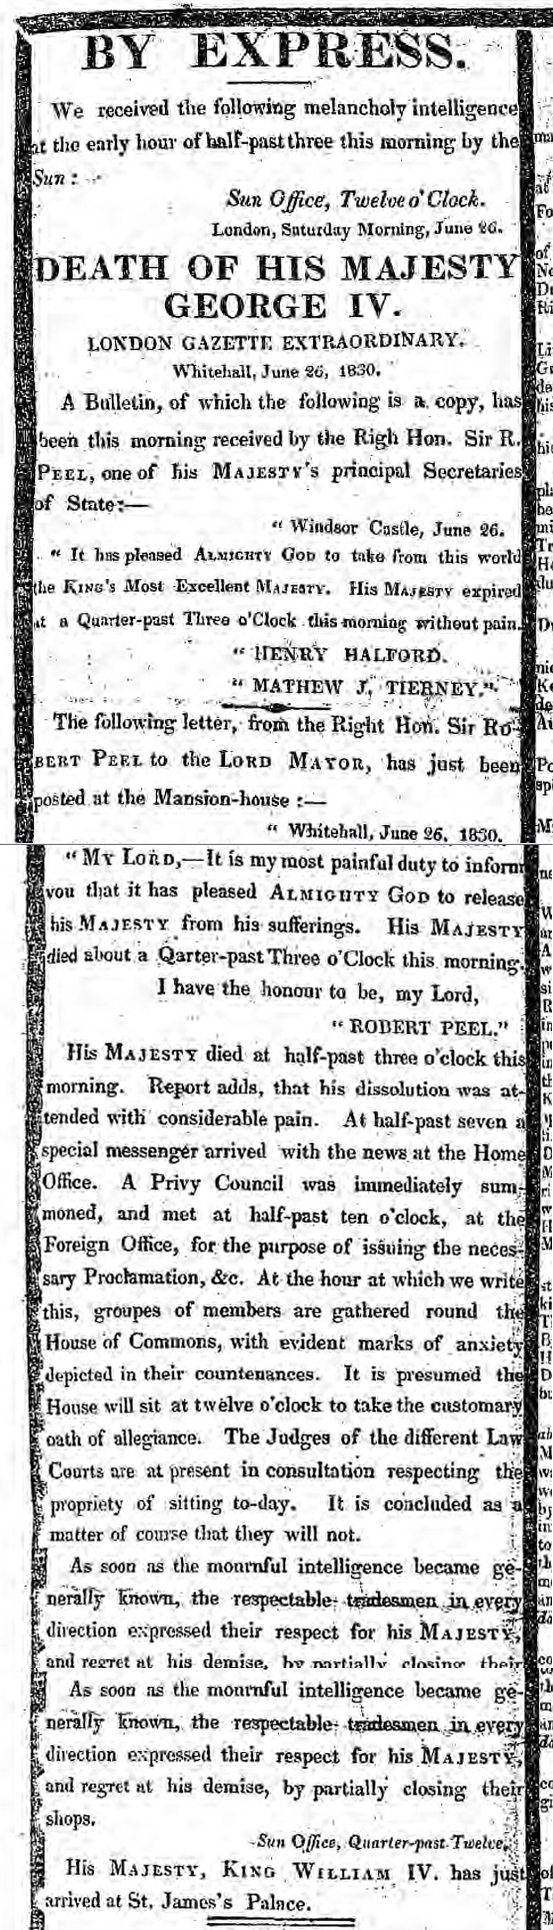 historical newspaper report about The Death of King George IV